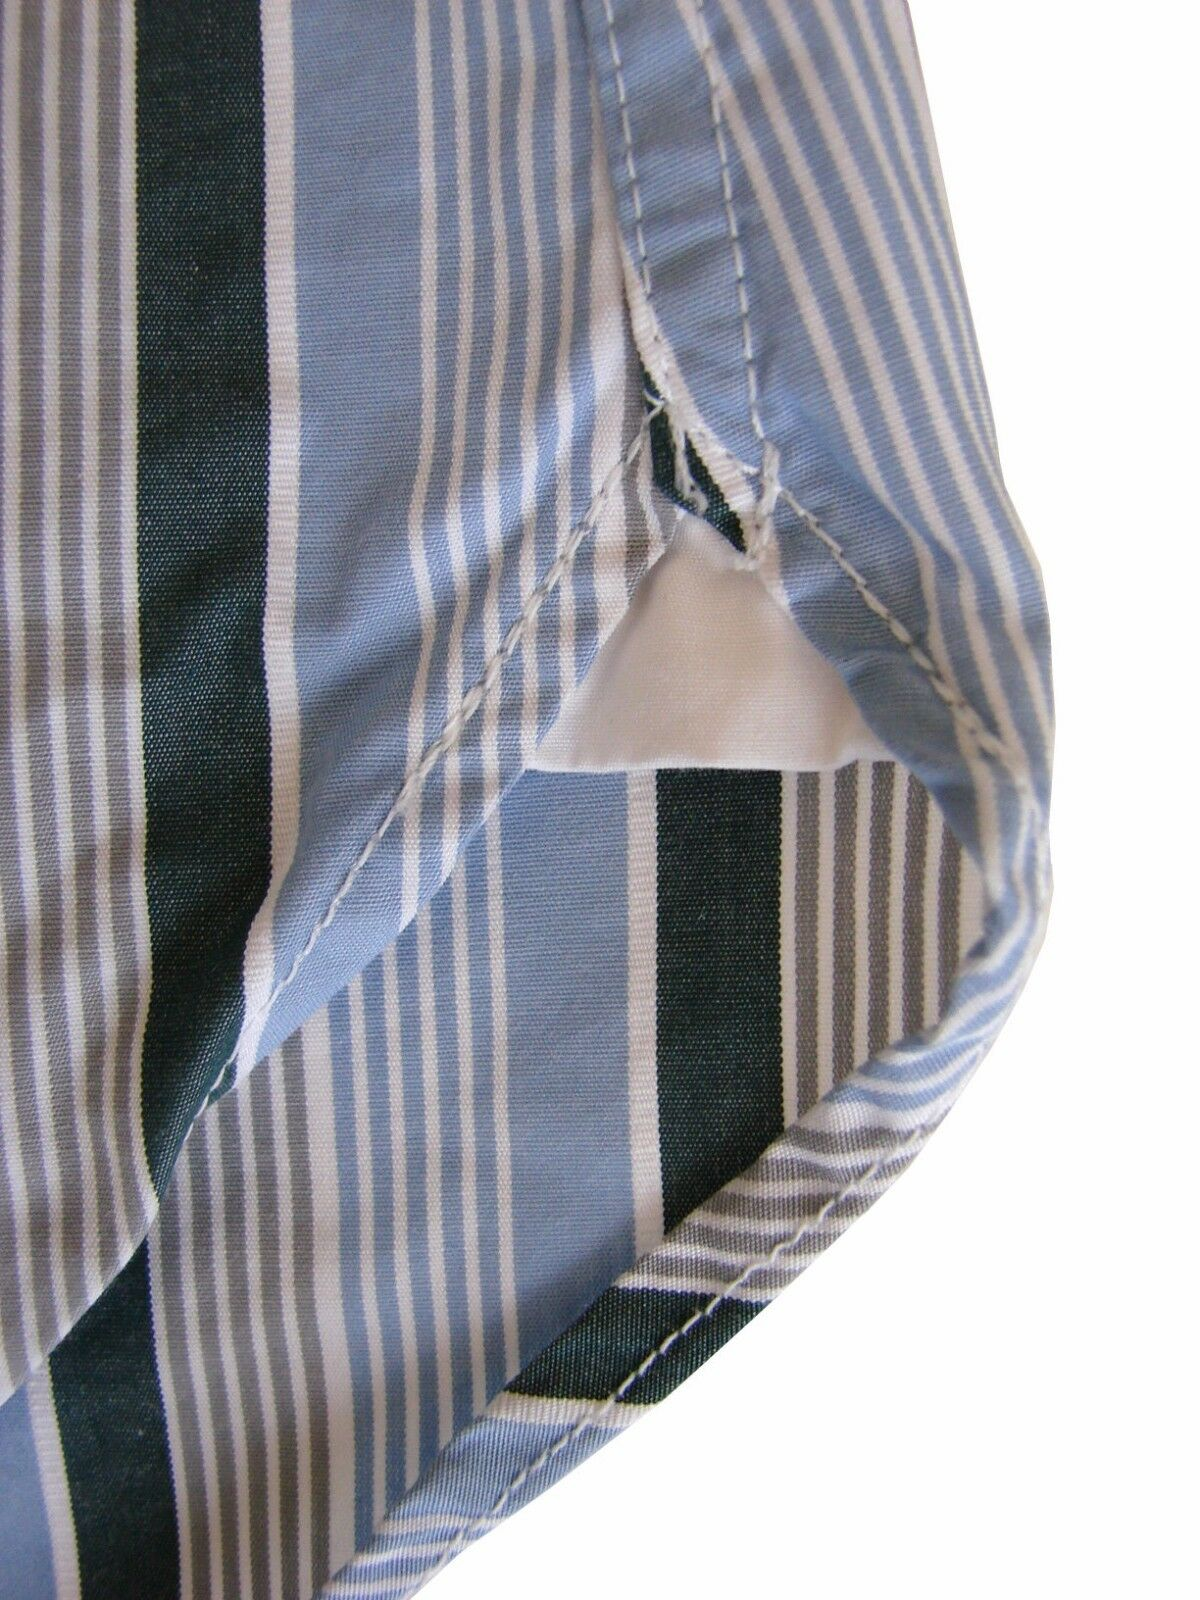 REISS Shirt Mens 14.5 14.5 14.5 S Blau - Multi-Colourot Stripes SLIM FIT | Feinen Qualität